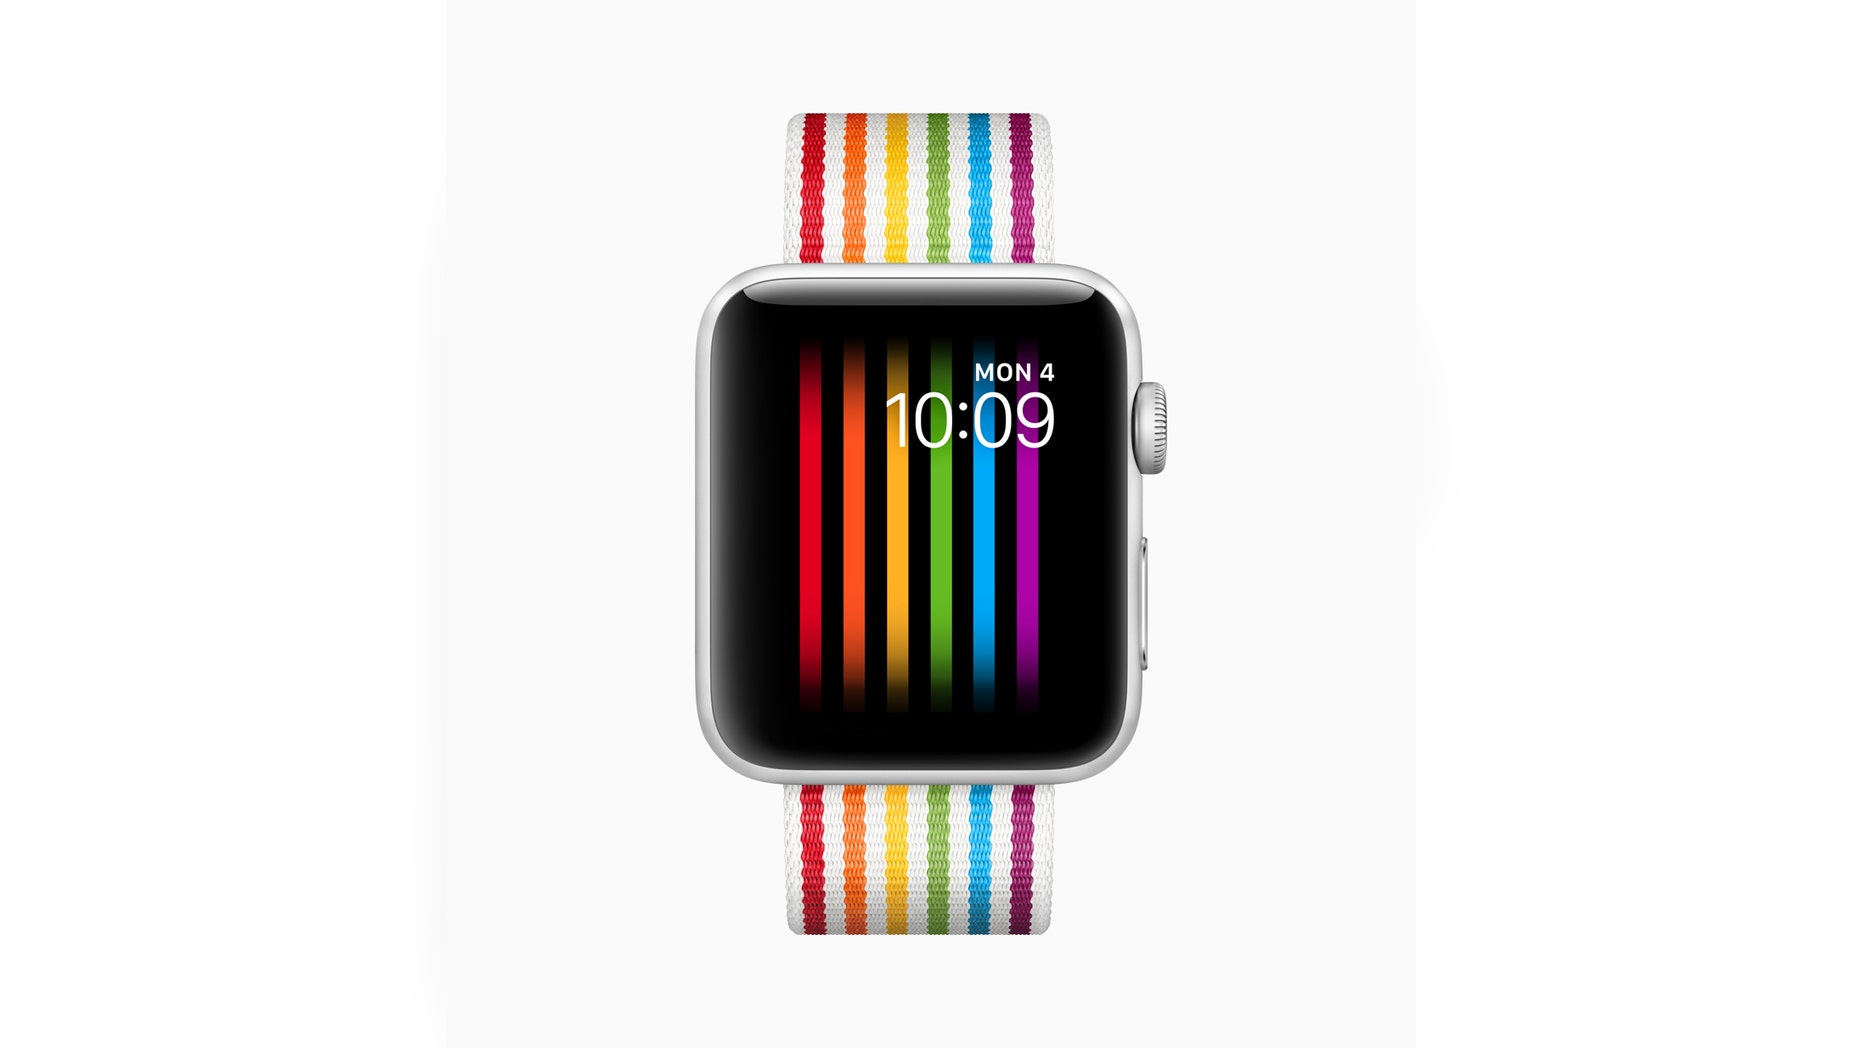 The Apple Watch Pride face that was launched in June (Apple)